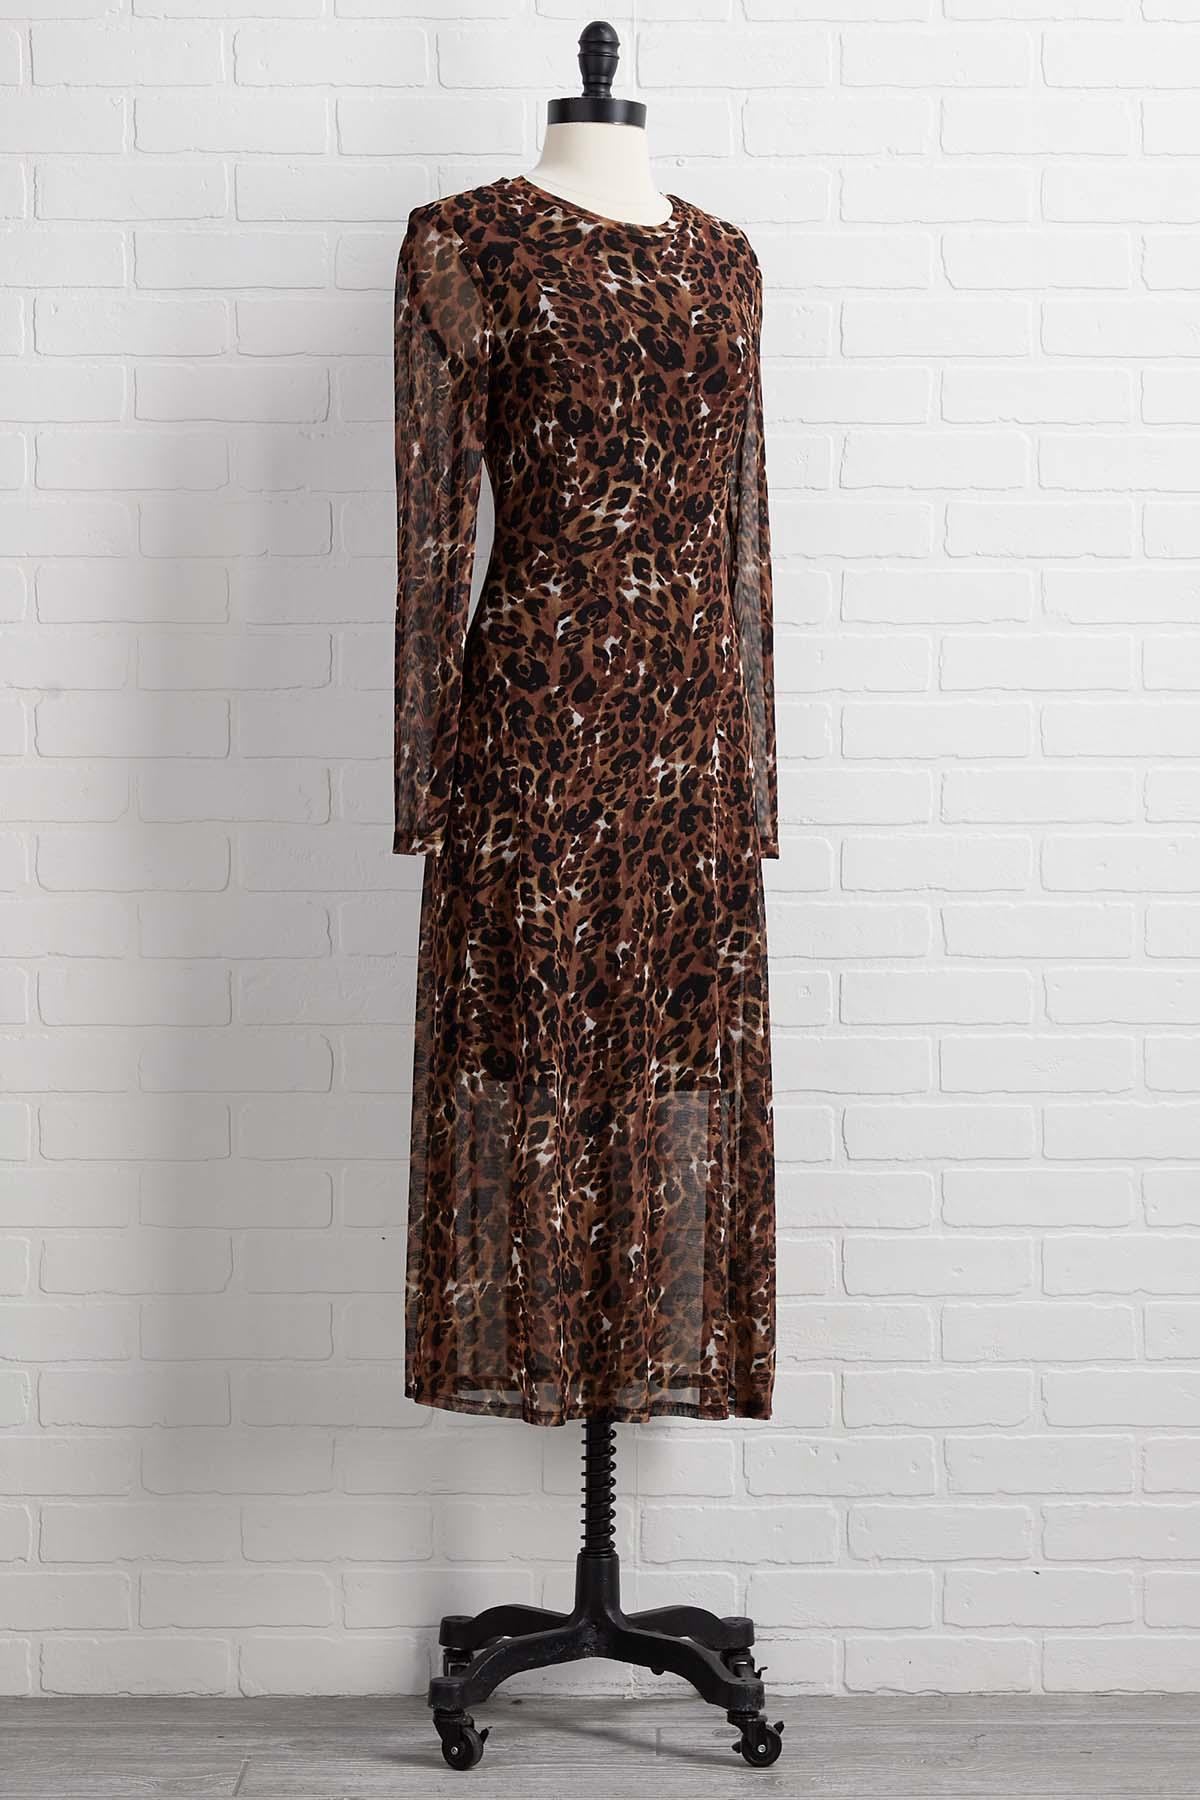 A Meshy Animal Midi Dress